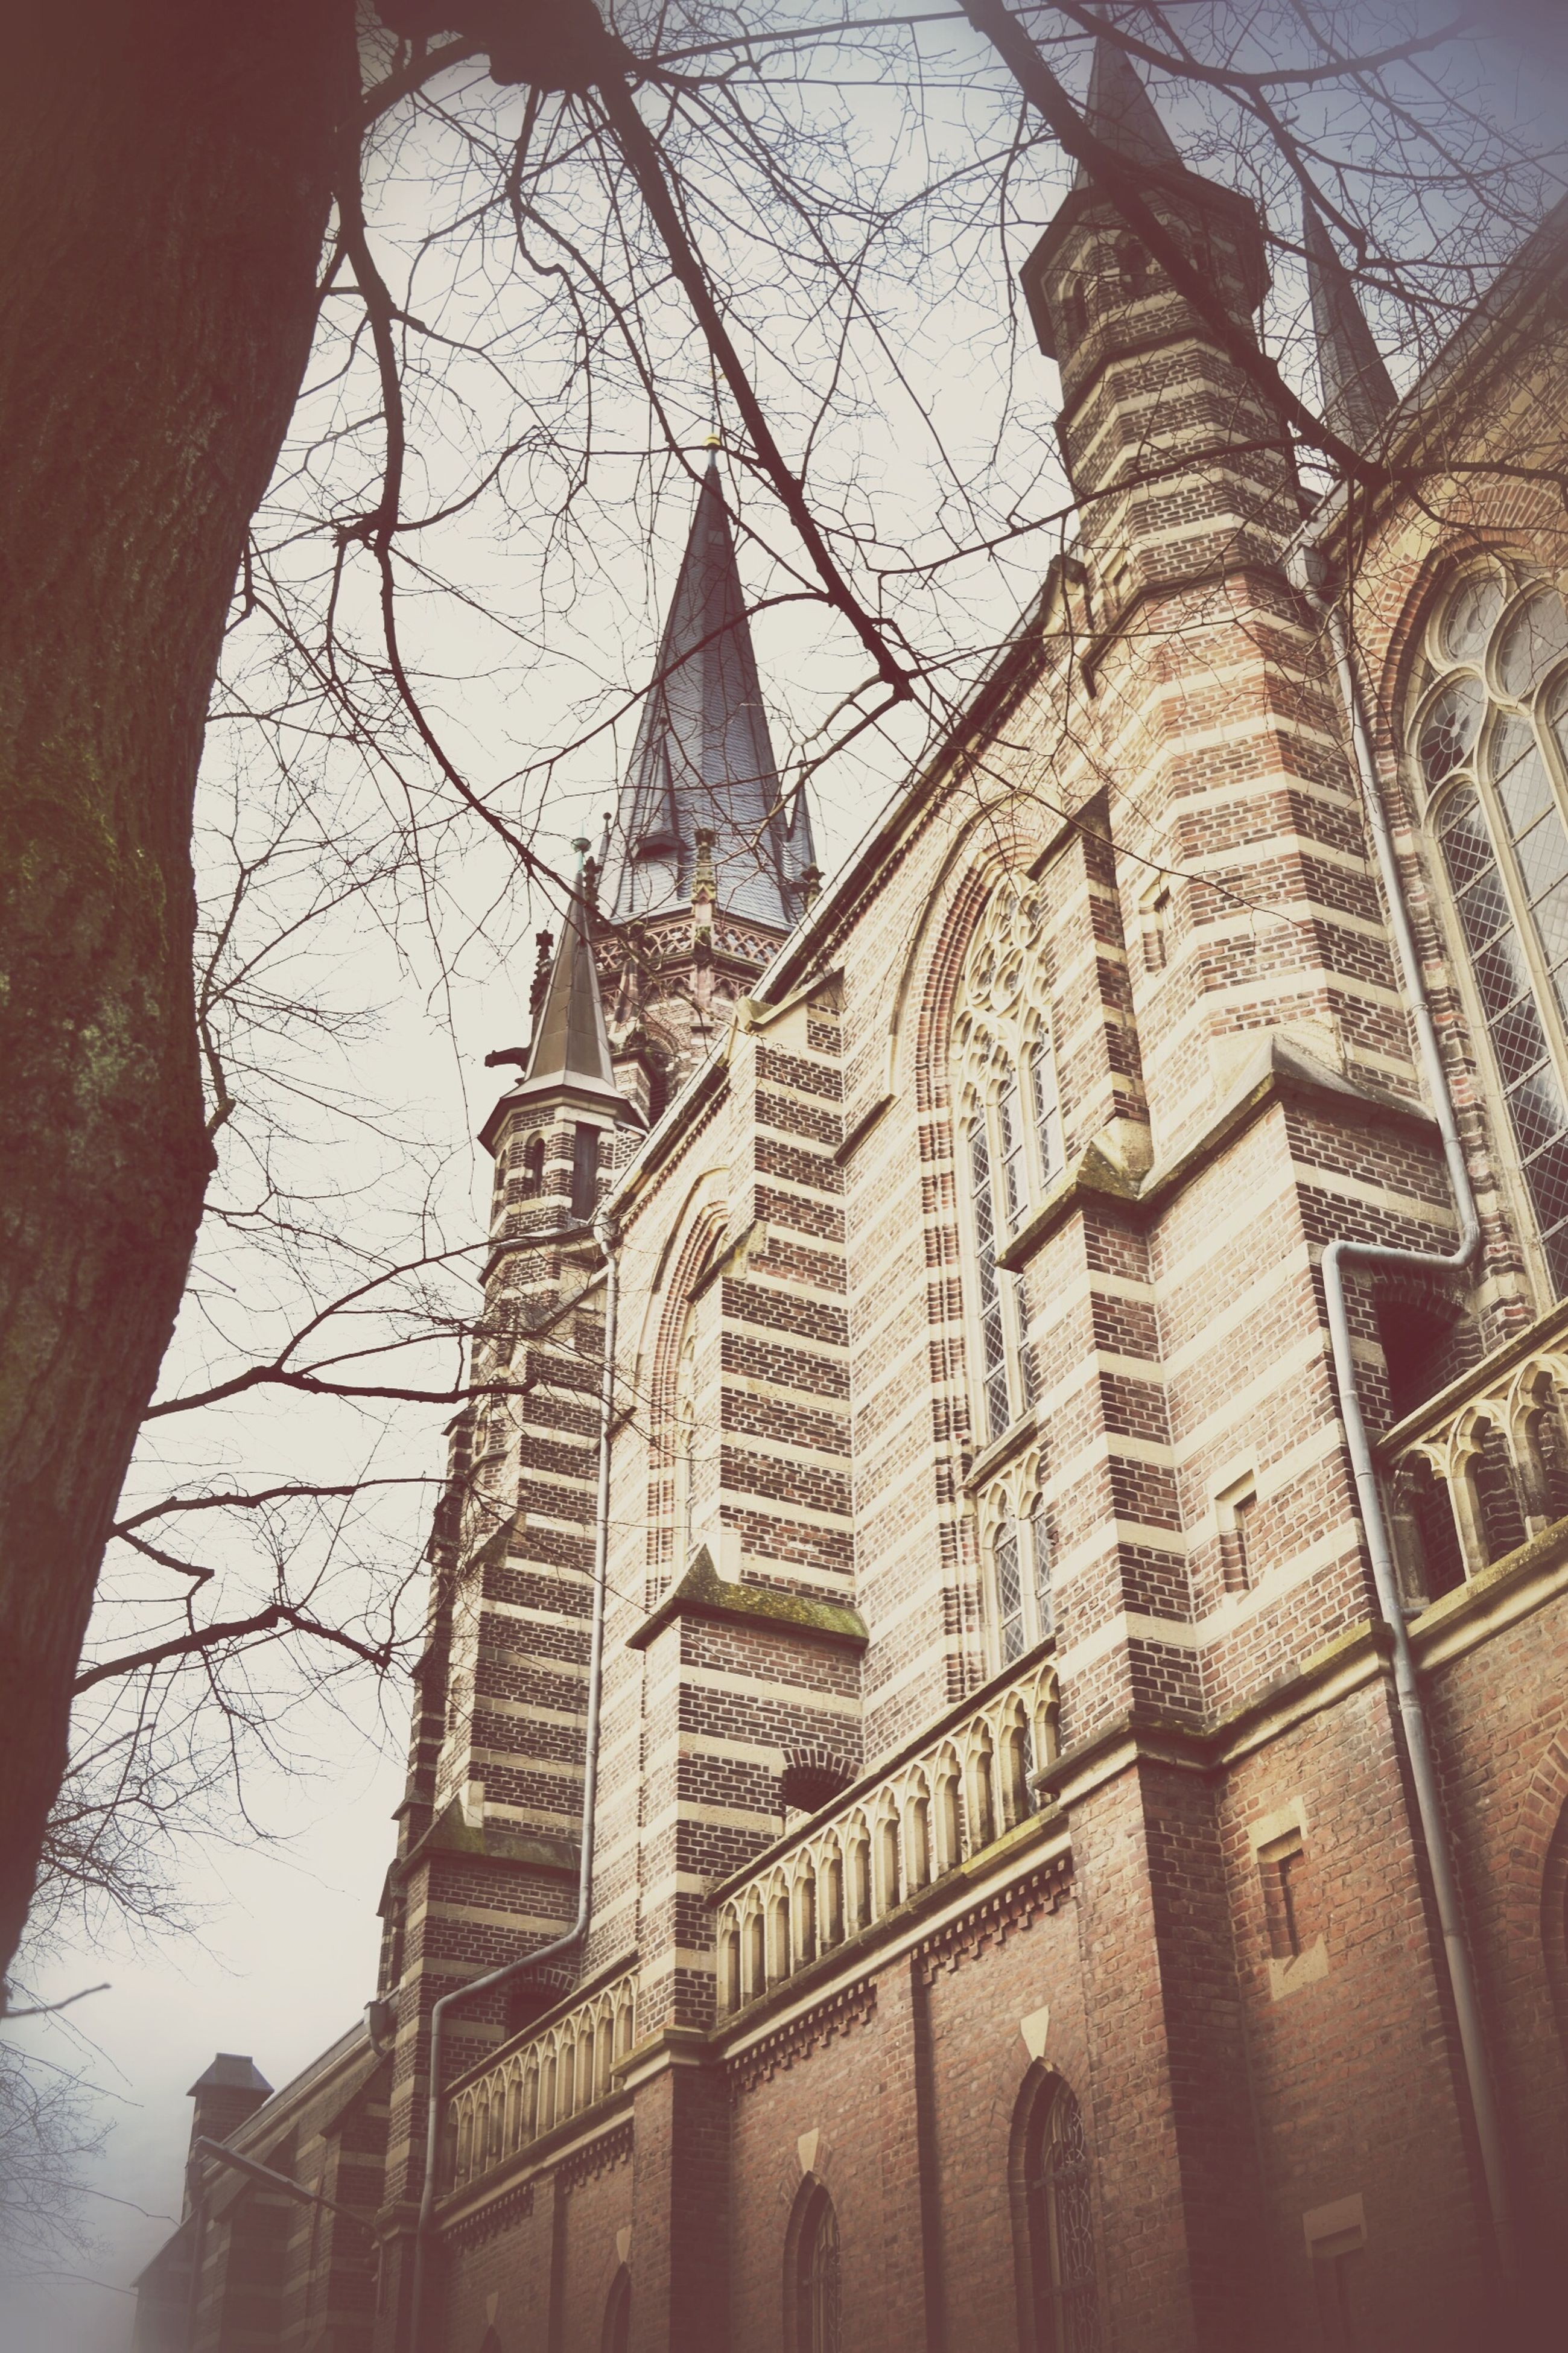 architecture, building exterior, built structure, low angle view, place of worship, religion, church, spirituality, bare tree, tower, city, tree, sky, tall - high, branch, travel destinations, famous place, building